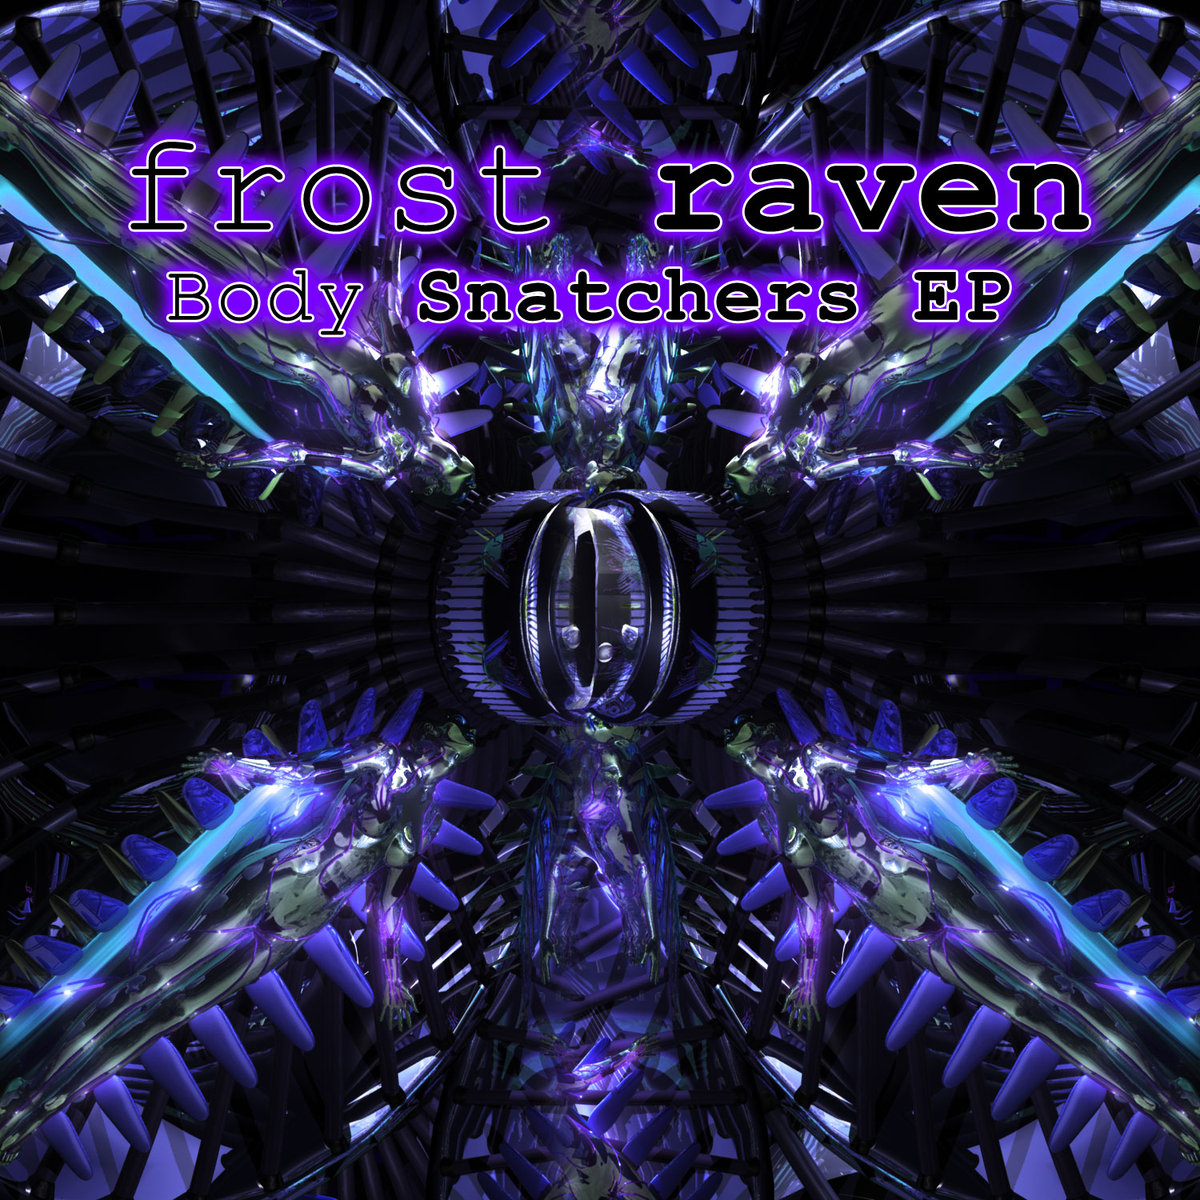 Frost Raven - Cosmic Radiation @ 'Body Snatchers' album (electronic, goa)